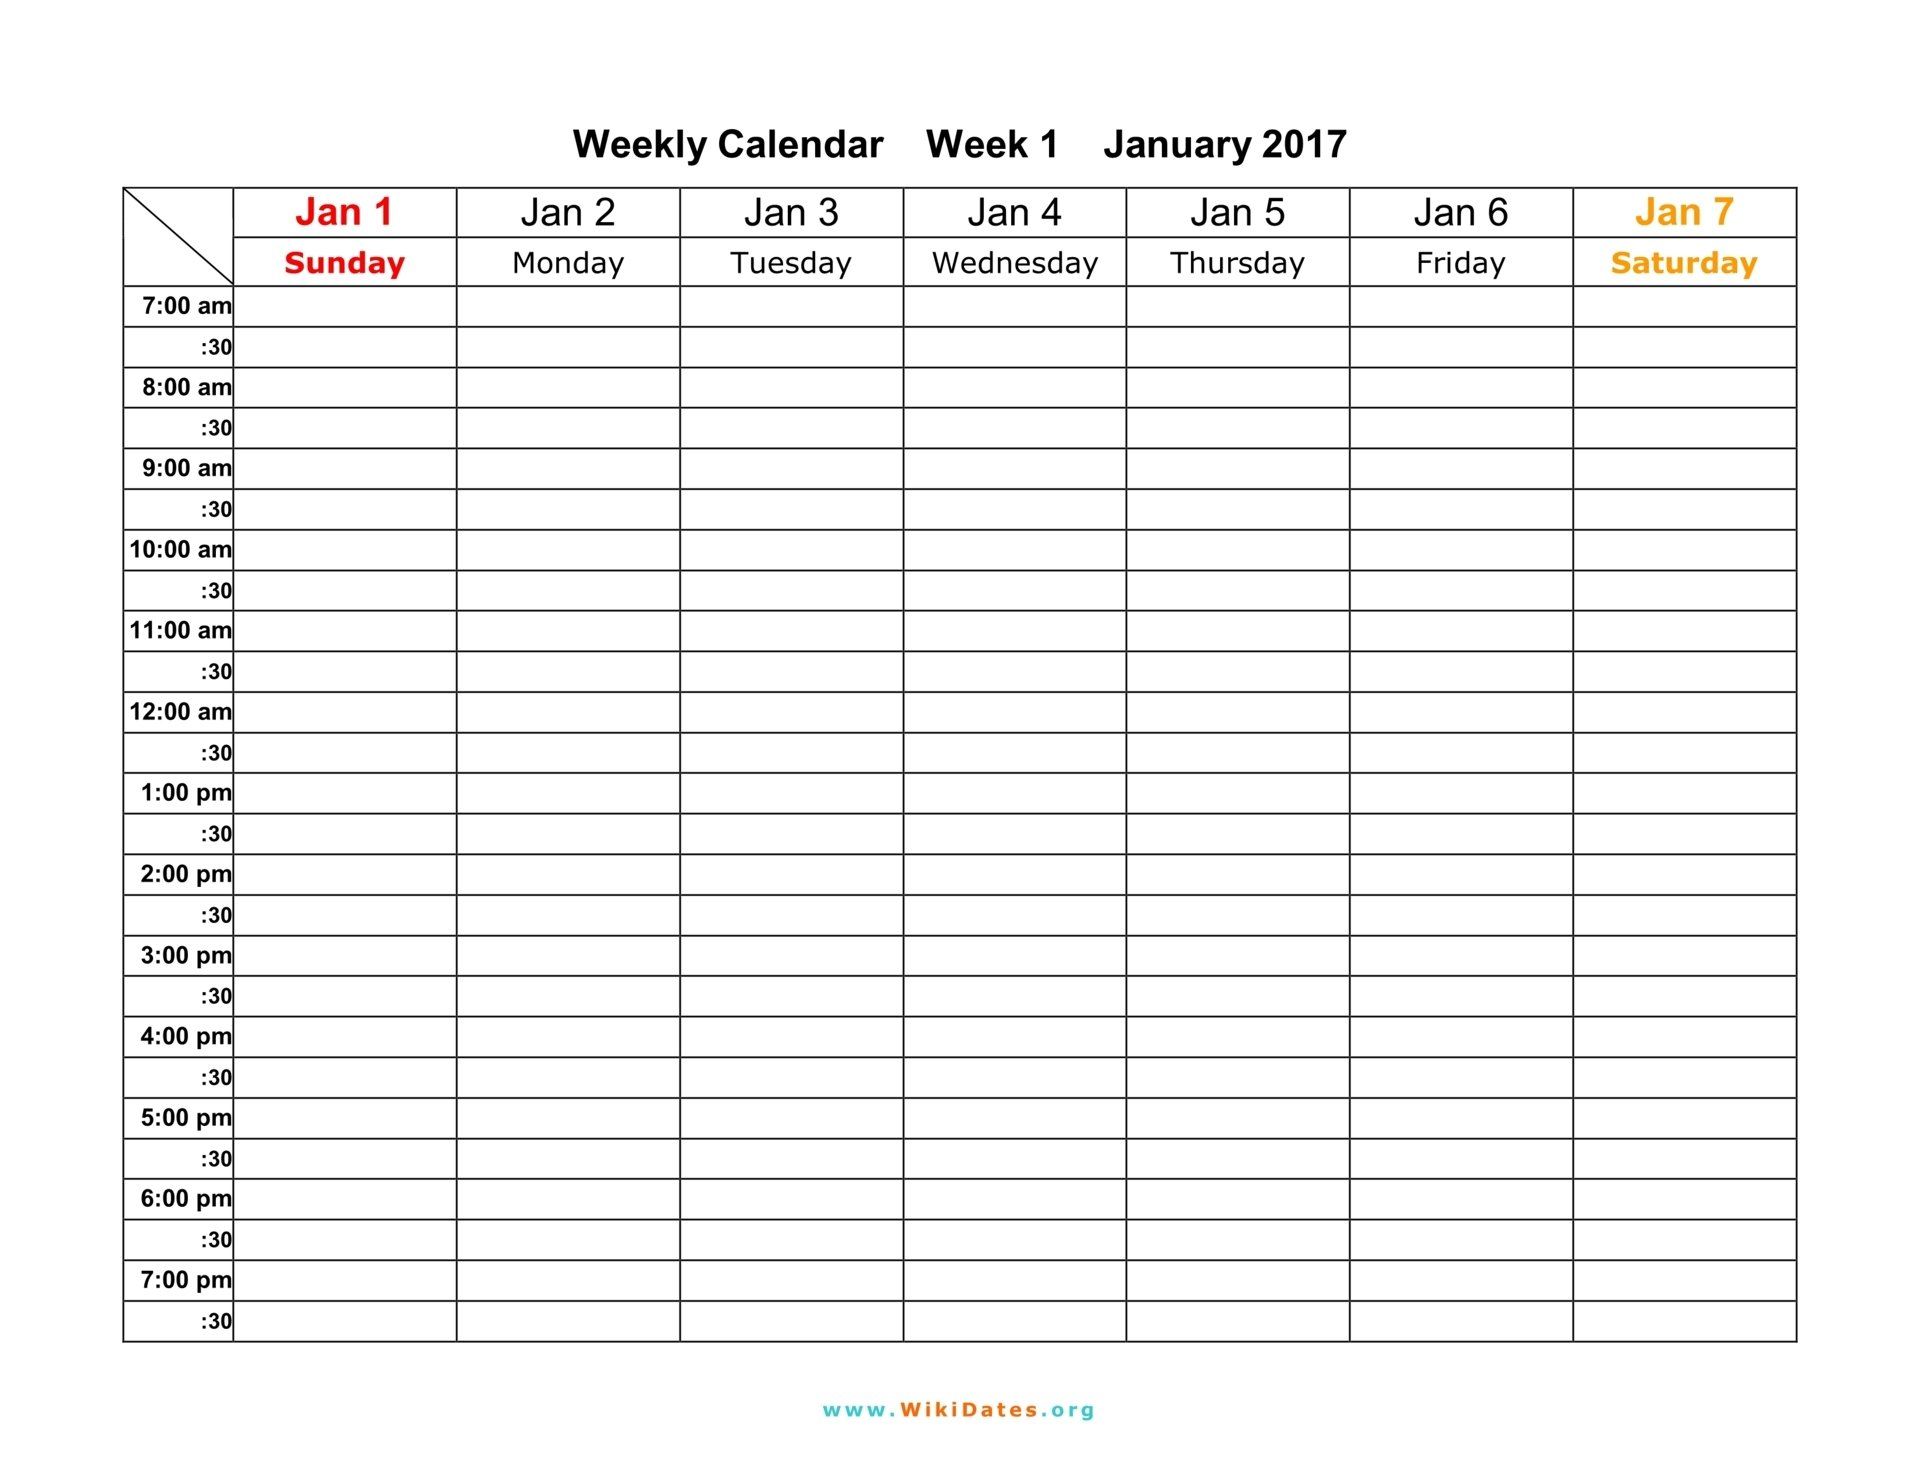 Weekly Calendar - Download Weekly Calendar 2017 And 2018 Free 7 Day Calendar Template